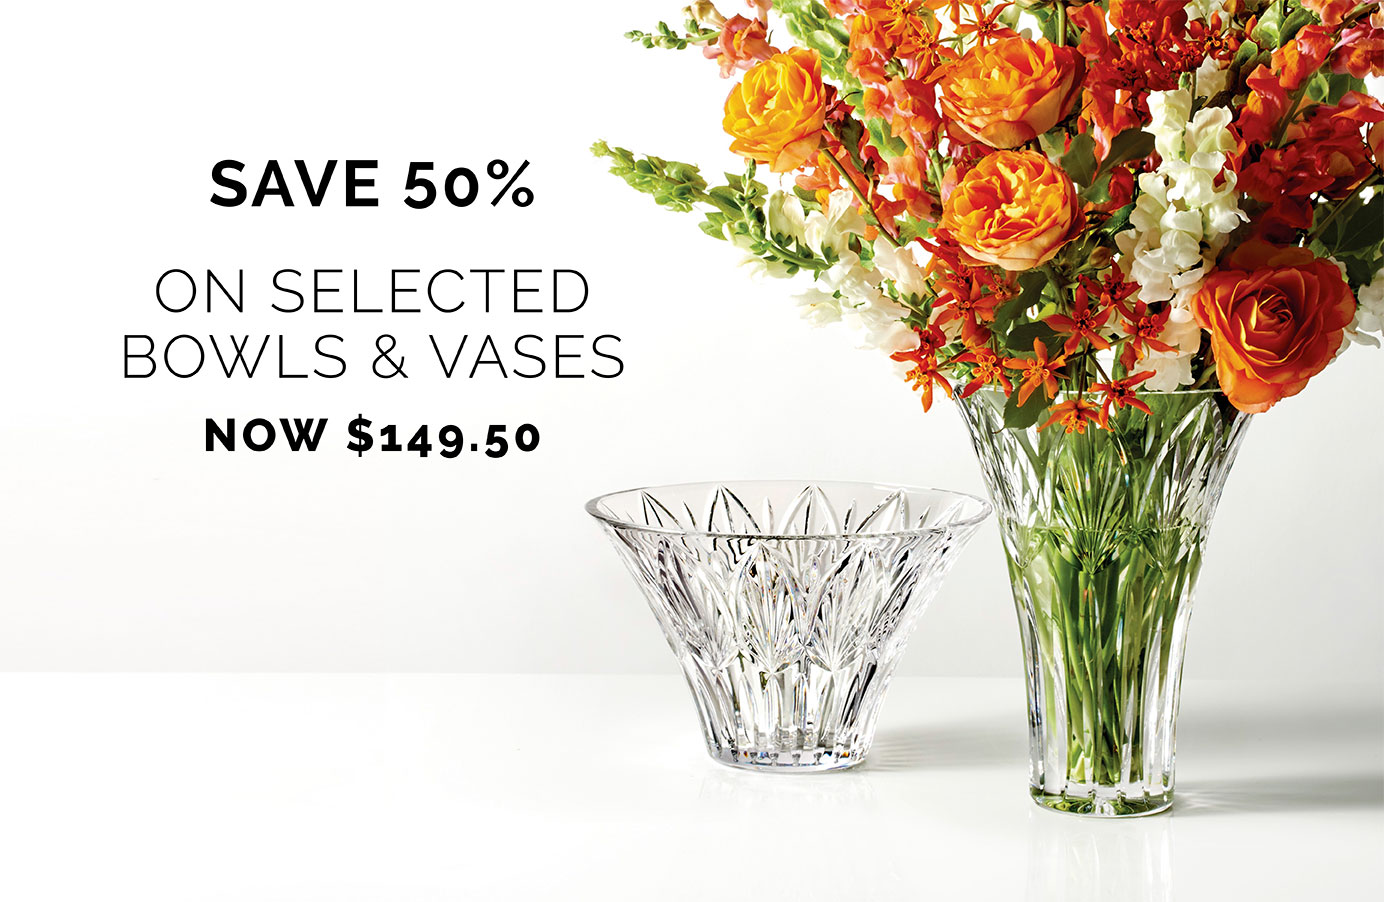 Save 50% on vases and bowls 19th March bottom right